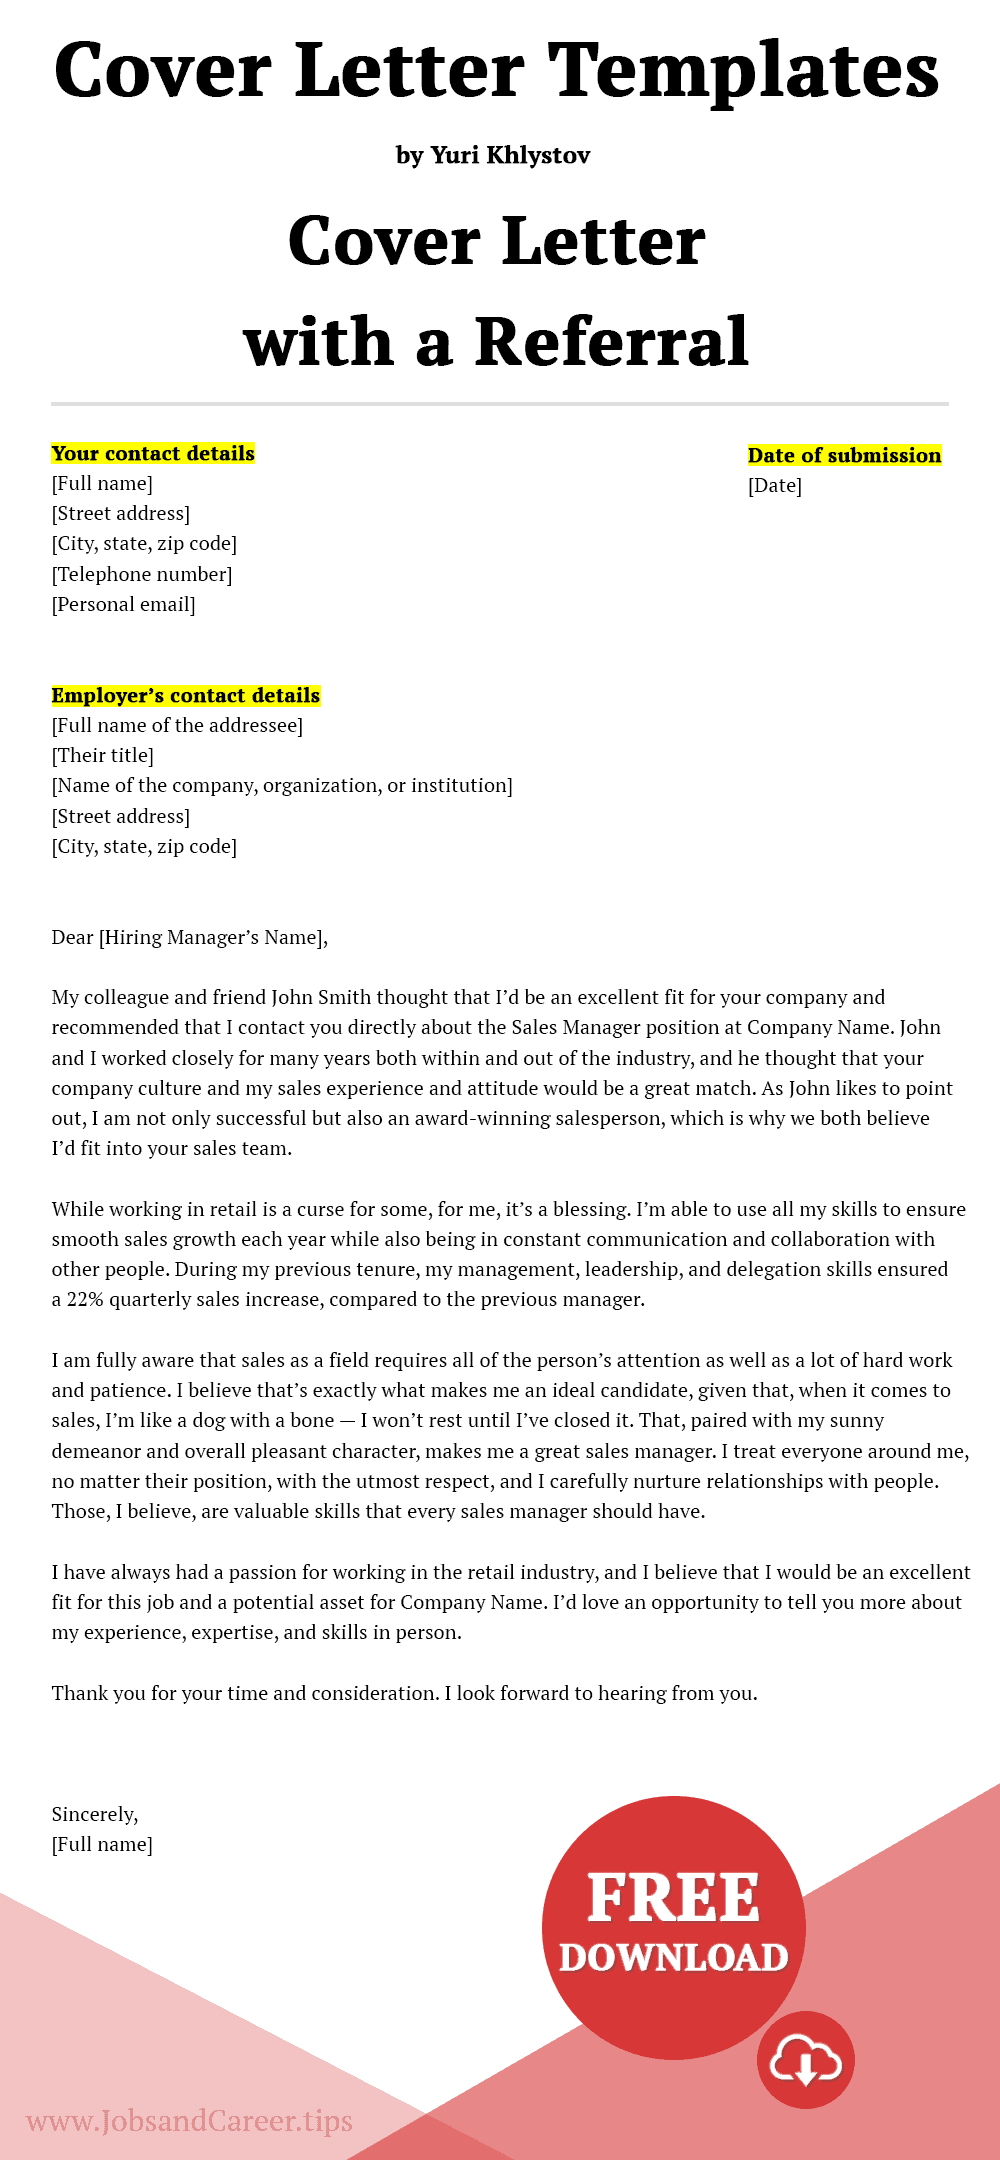 Click to download the cover letter template with a referral